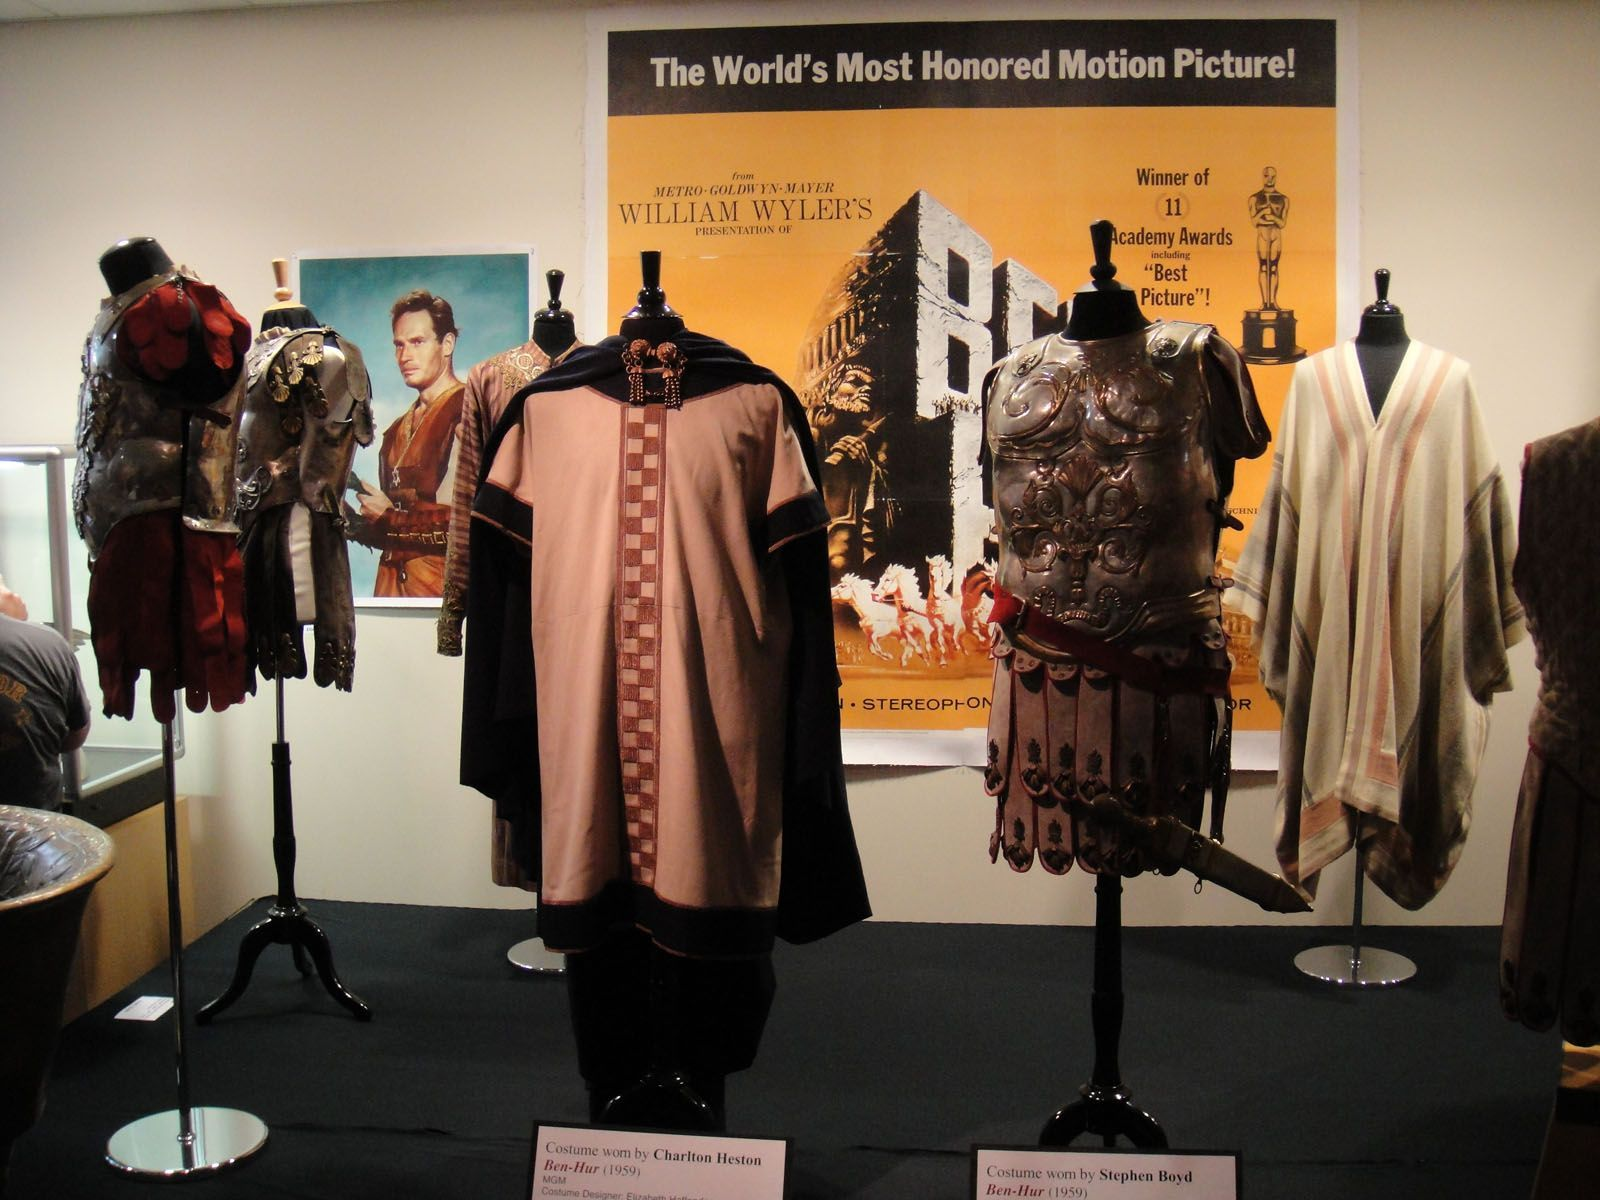 Debbie Reynold's Charity Auction. Ben-Hur (1959) costumes. #benhur1959 Debbie Reynold's Charity Auction. Ben-Hur (1959) costumes. #benhur1959